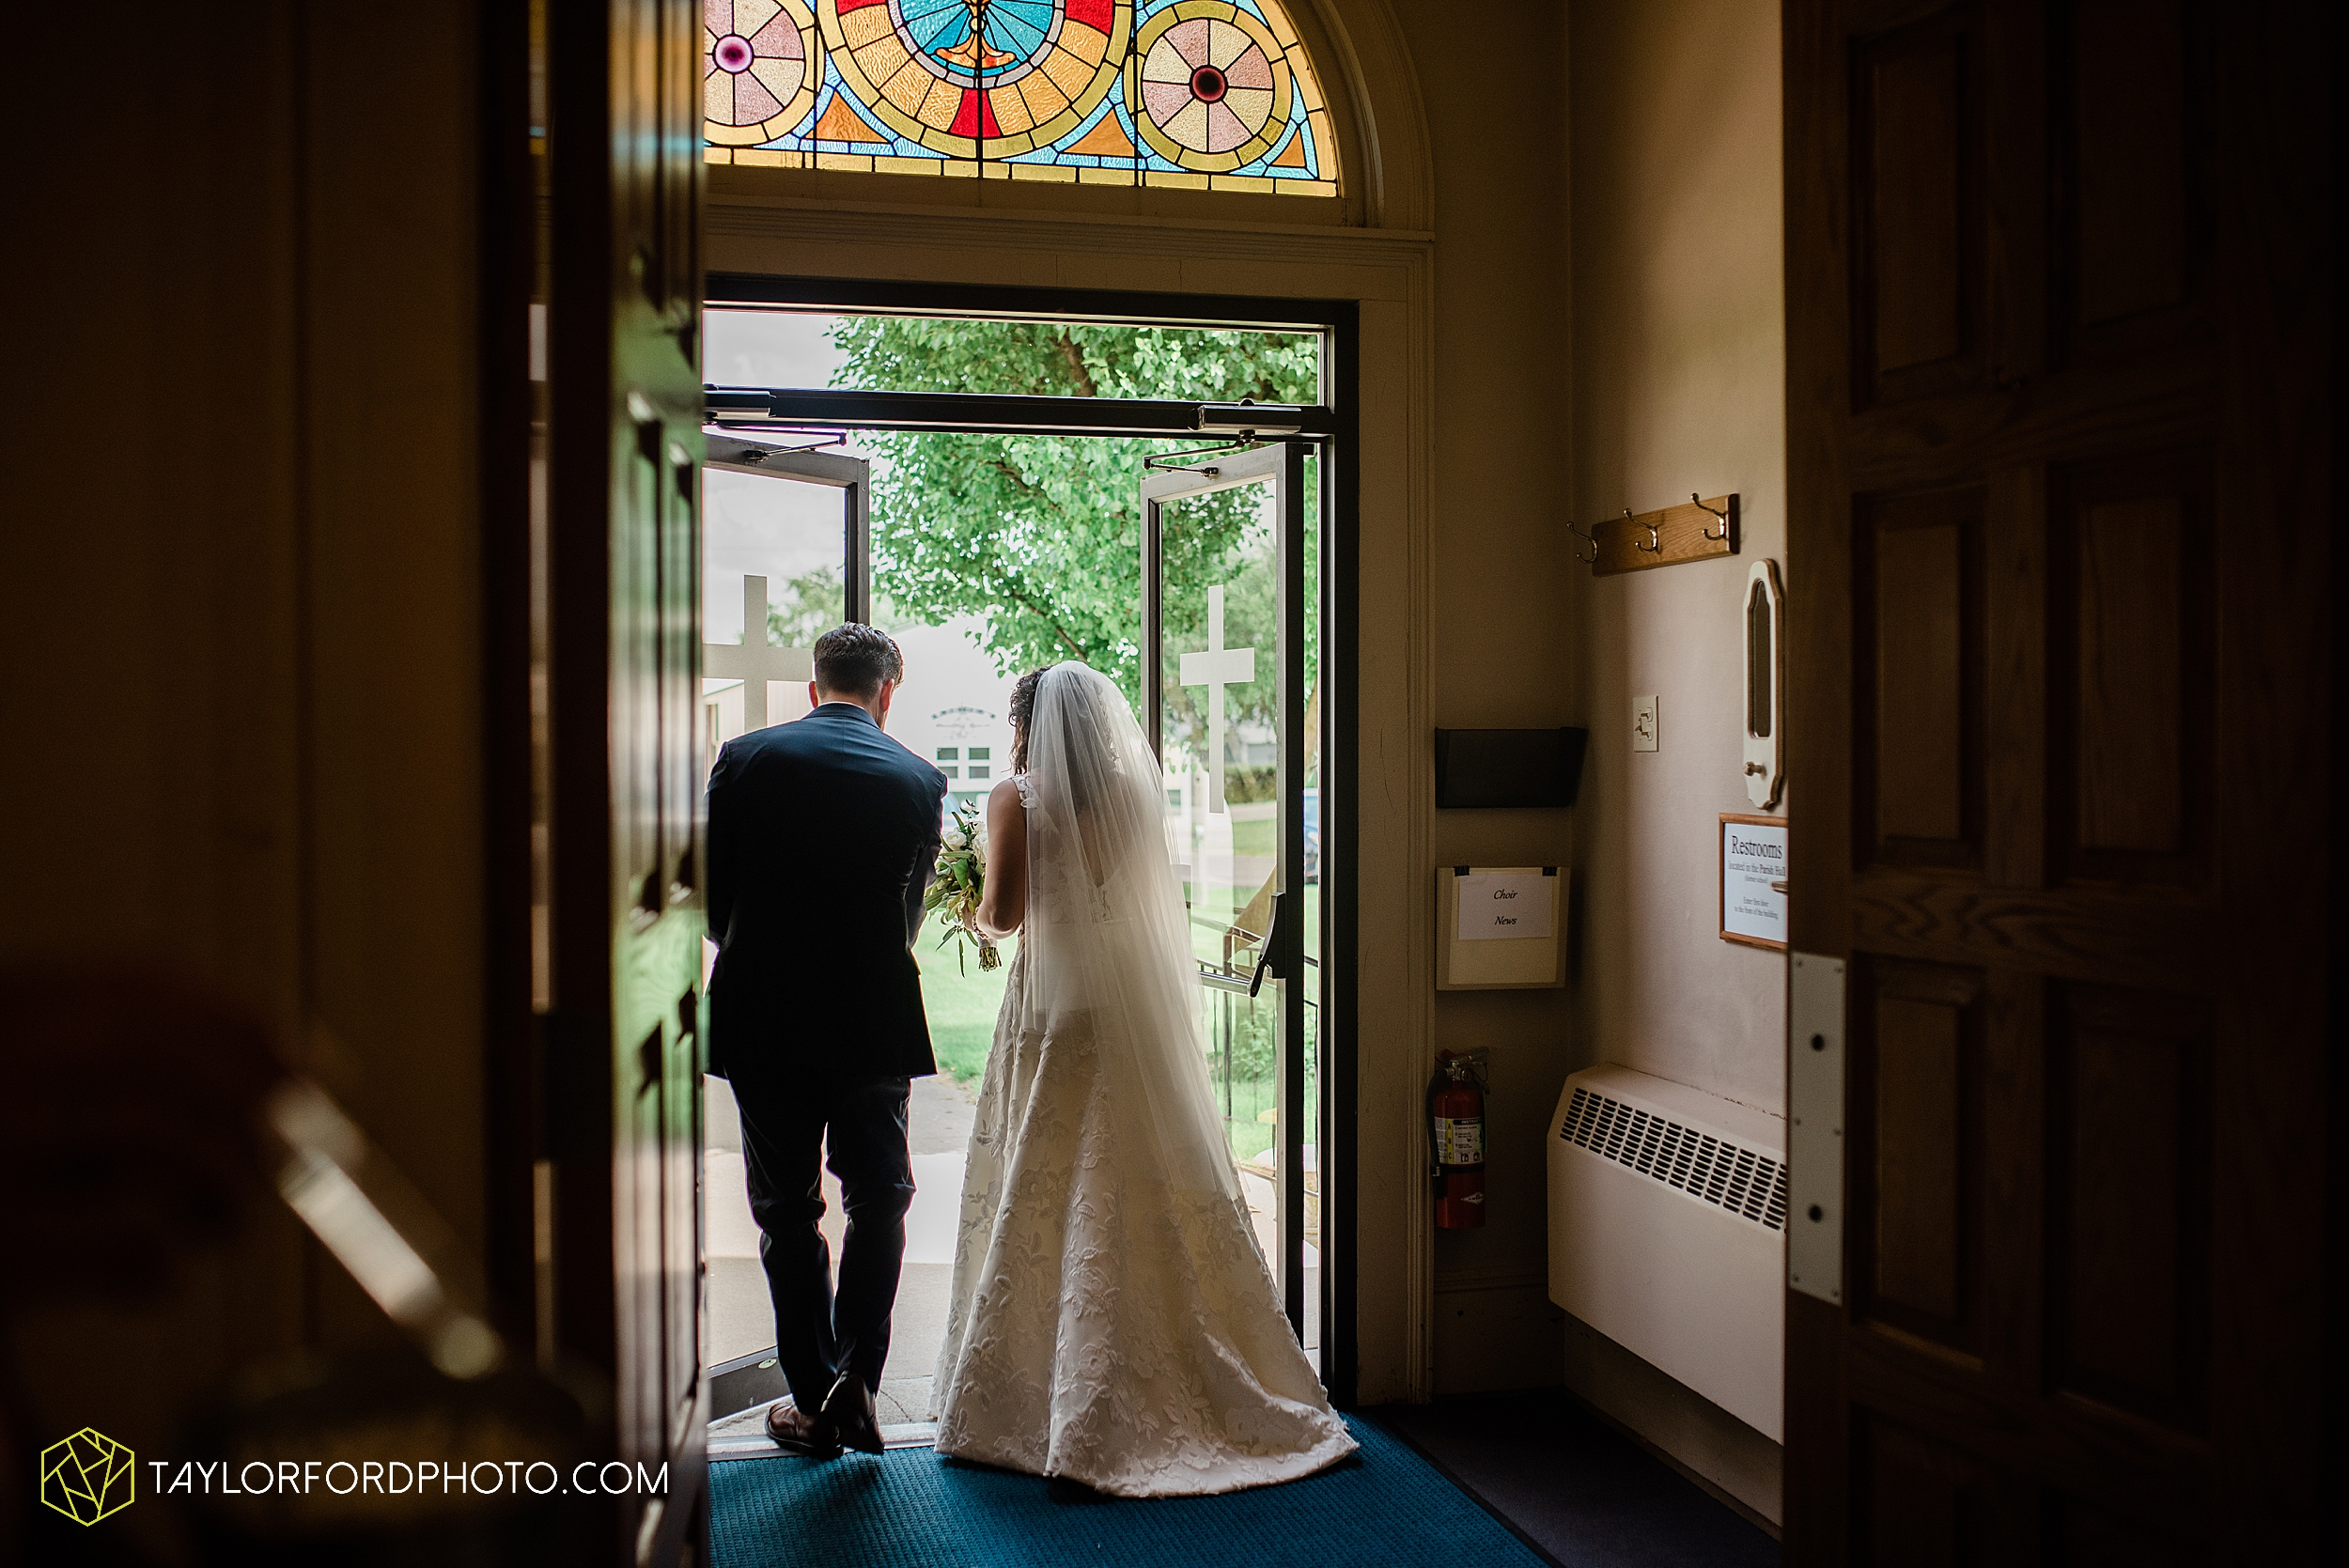 fort-recovery-ohio-saint-anthony-church-columbia-city-joseph-decuis-farmstead-tri-lakes-shriner-lake-wawasee-wedding-photographer-photography-taylor-ford-hirschy-photographer_2880.jpg